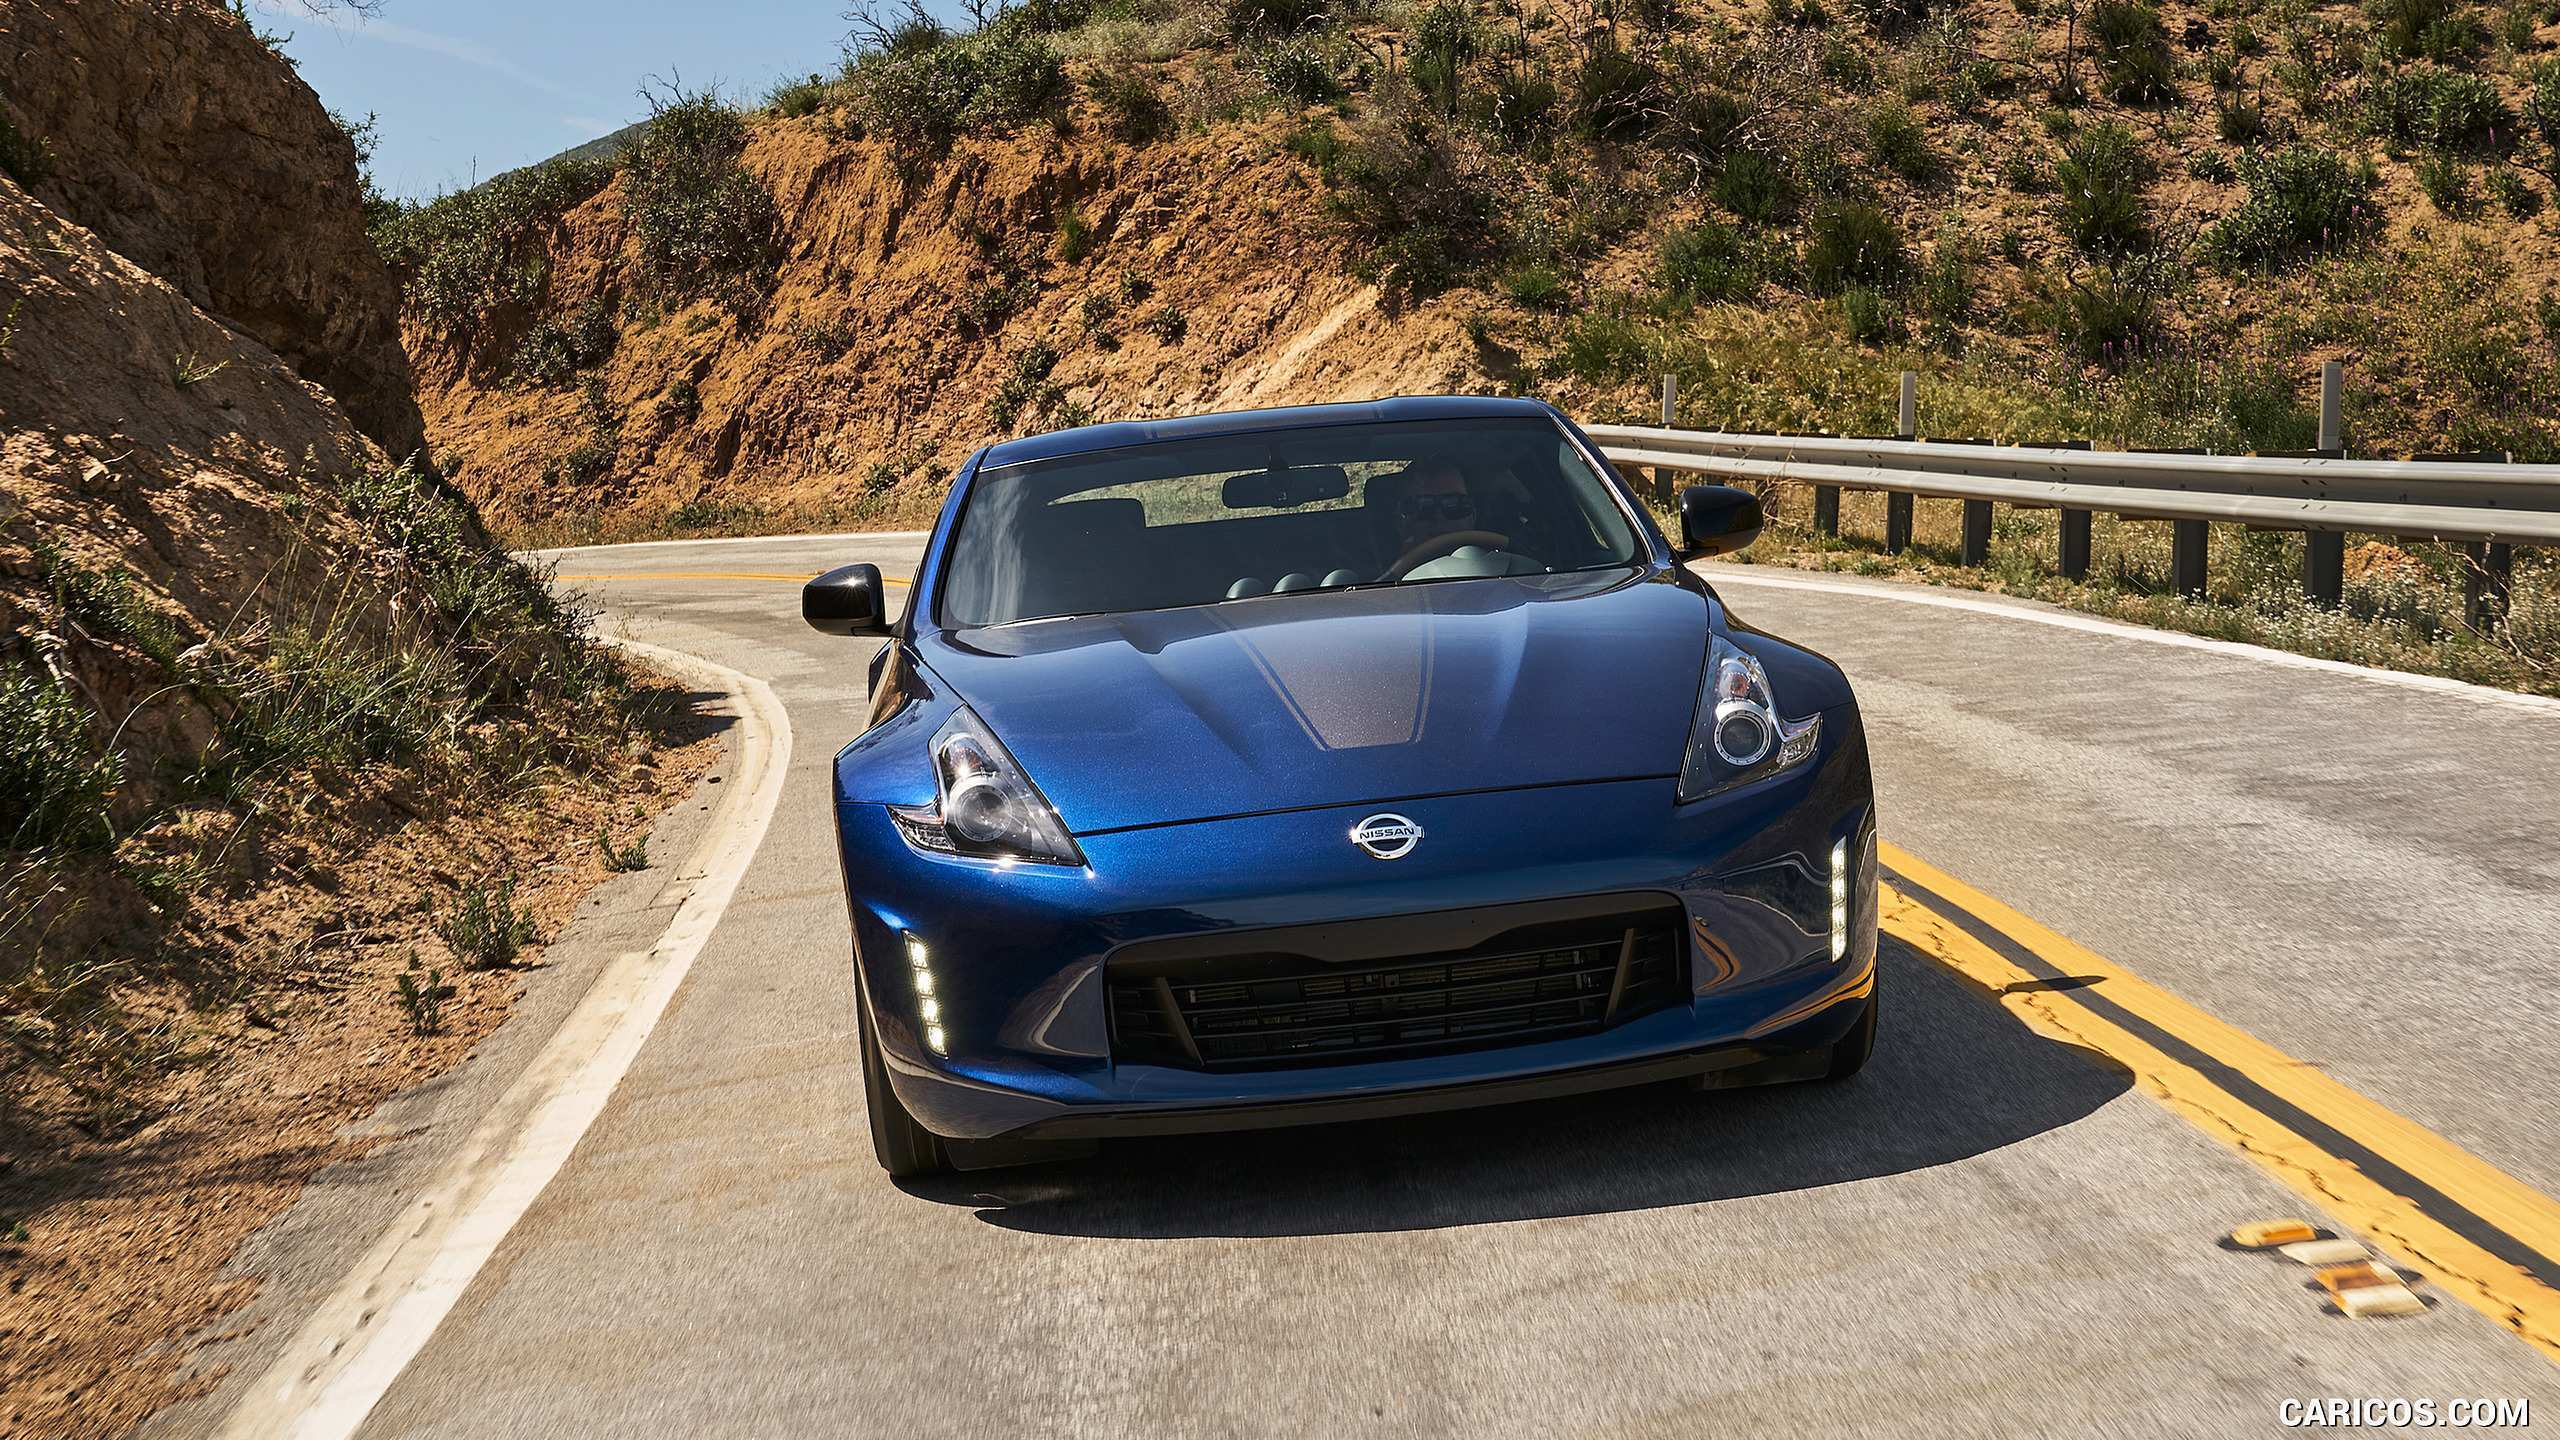 77 Great 2019 Nissan 370Z Heritage Edition Rumors by 2019 Nissan 370Z Heritage Edition